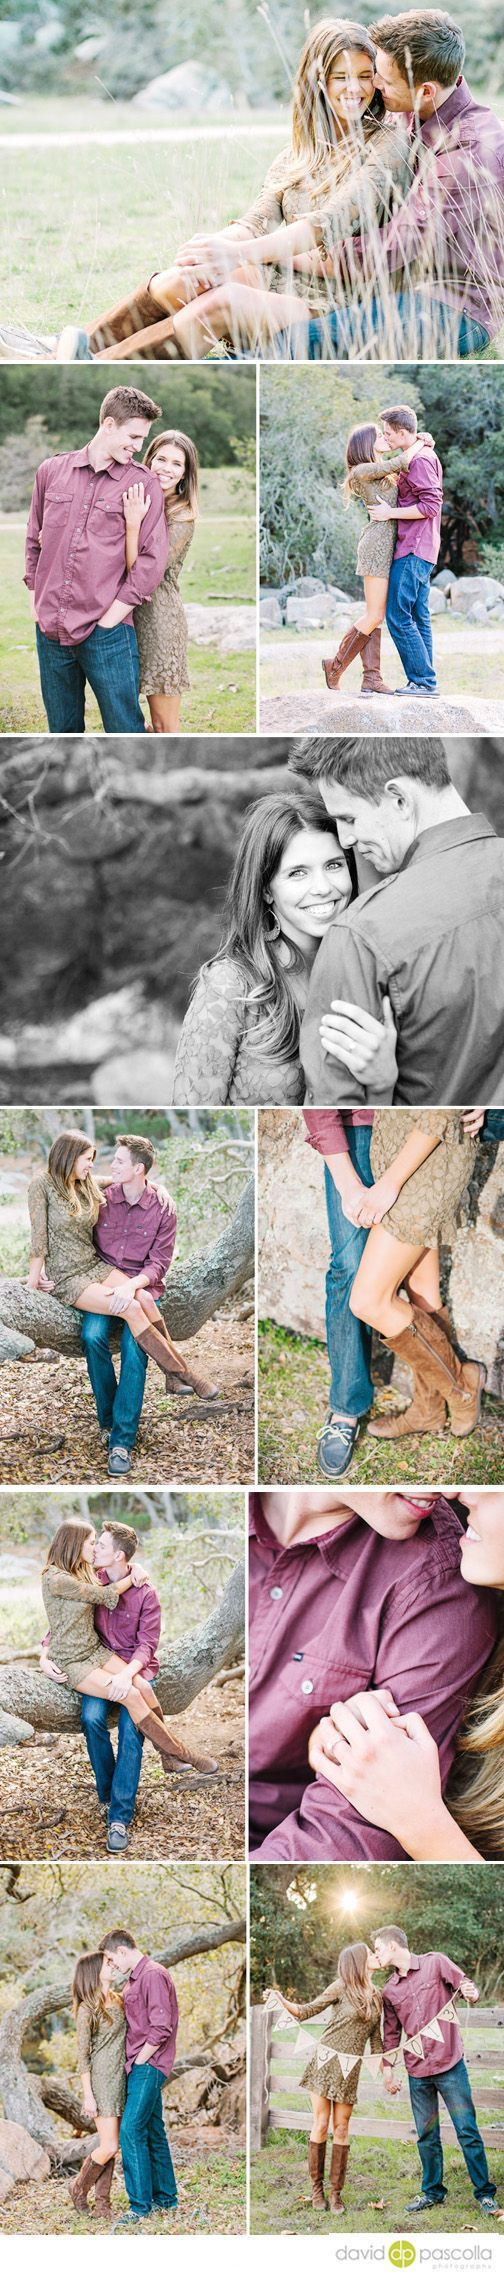 Adorable and fun ideas for a country engagement shoot!  Sweet, simple, and timeless #engagementphotos #weddingphotography #portraits www.davidpascolla...